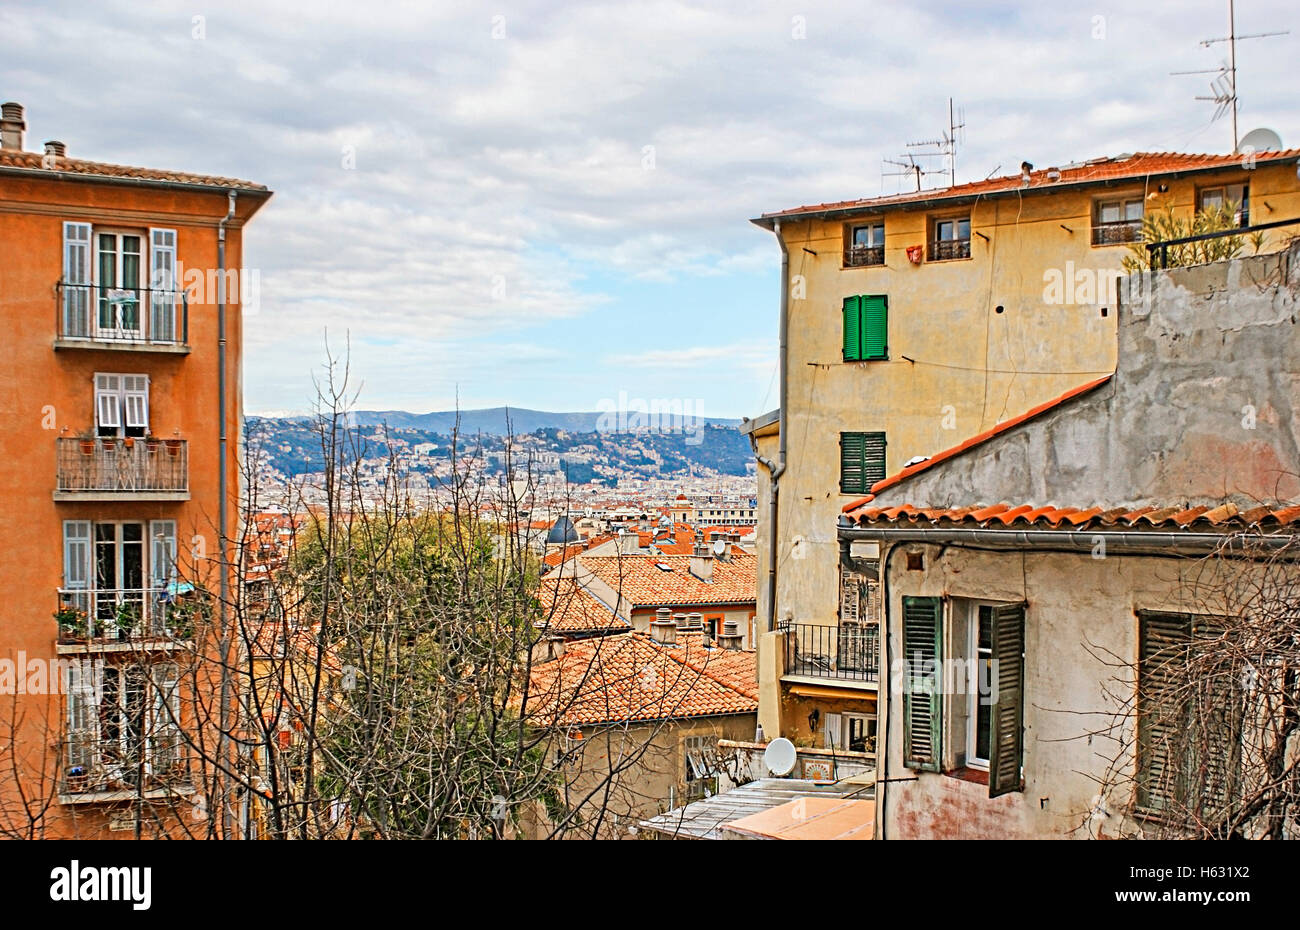 The reward for those who went up the city hill is the view on the tiled roofs and the mountains of Cote d'Azur - Stock Image